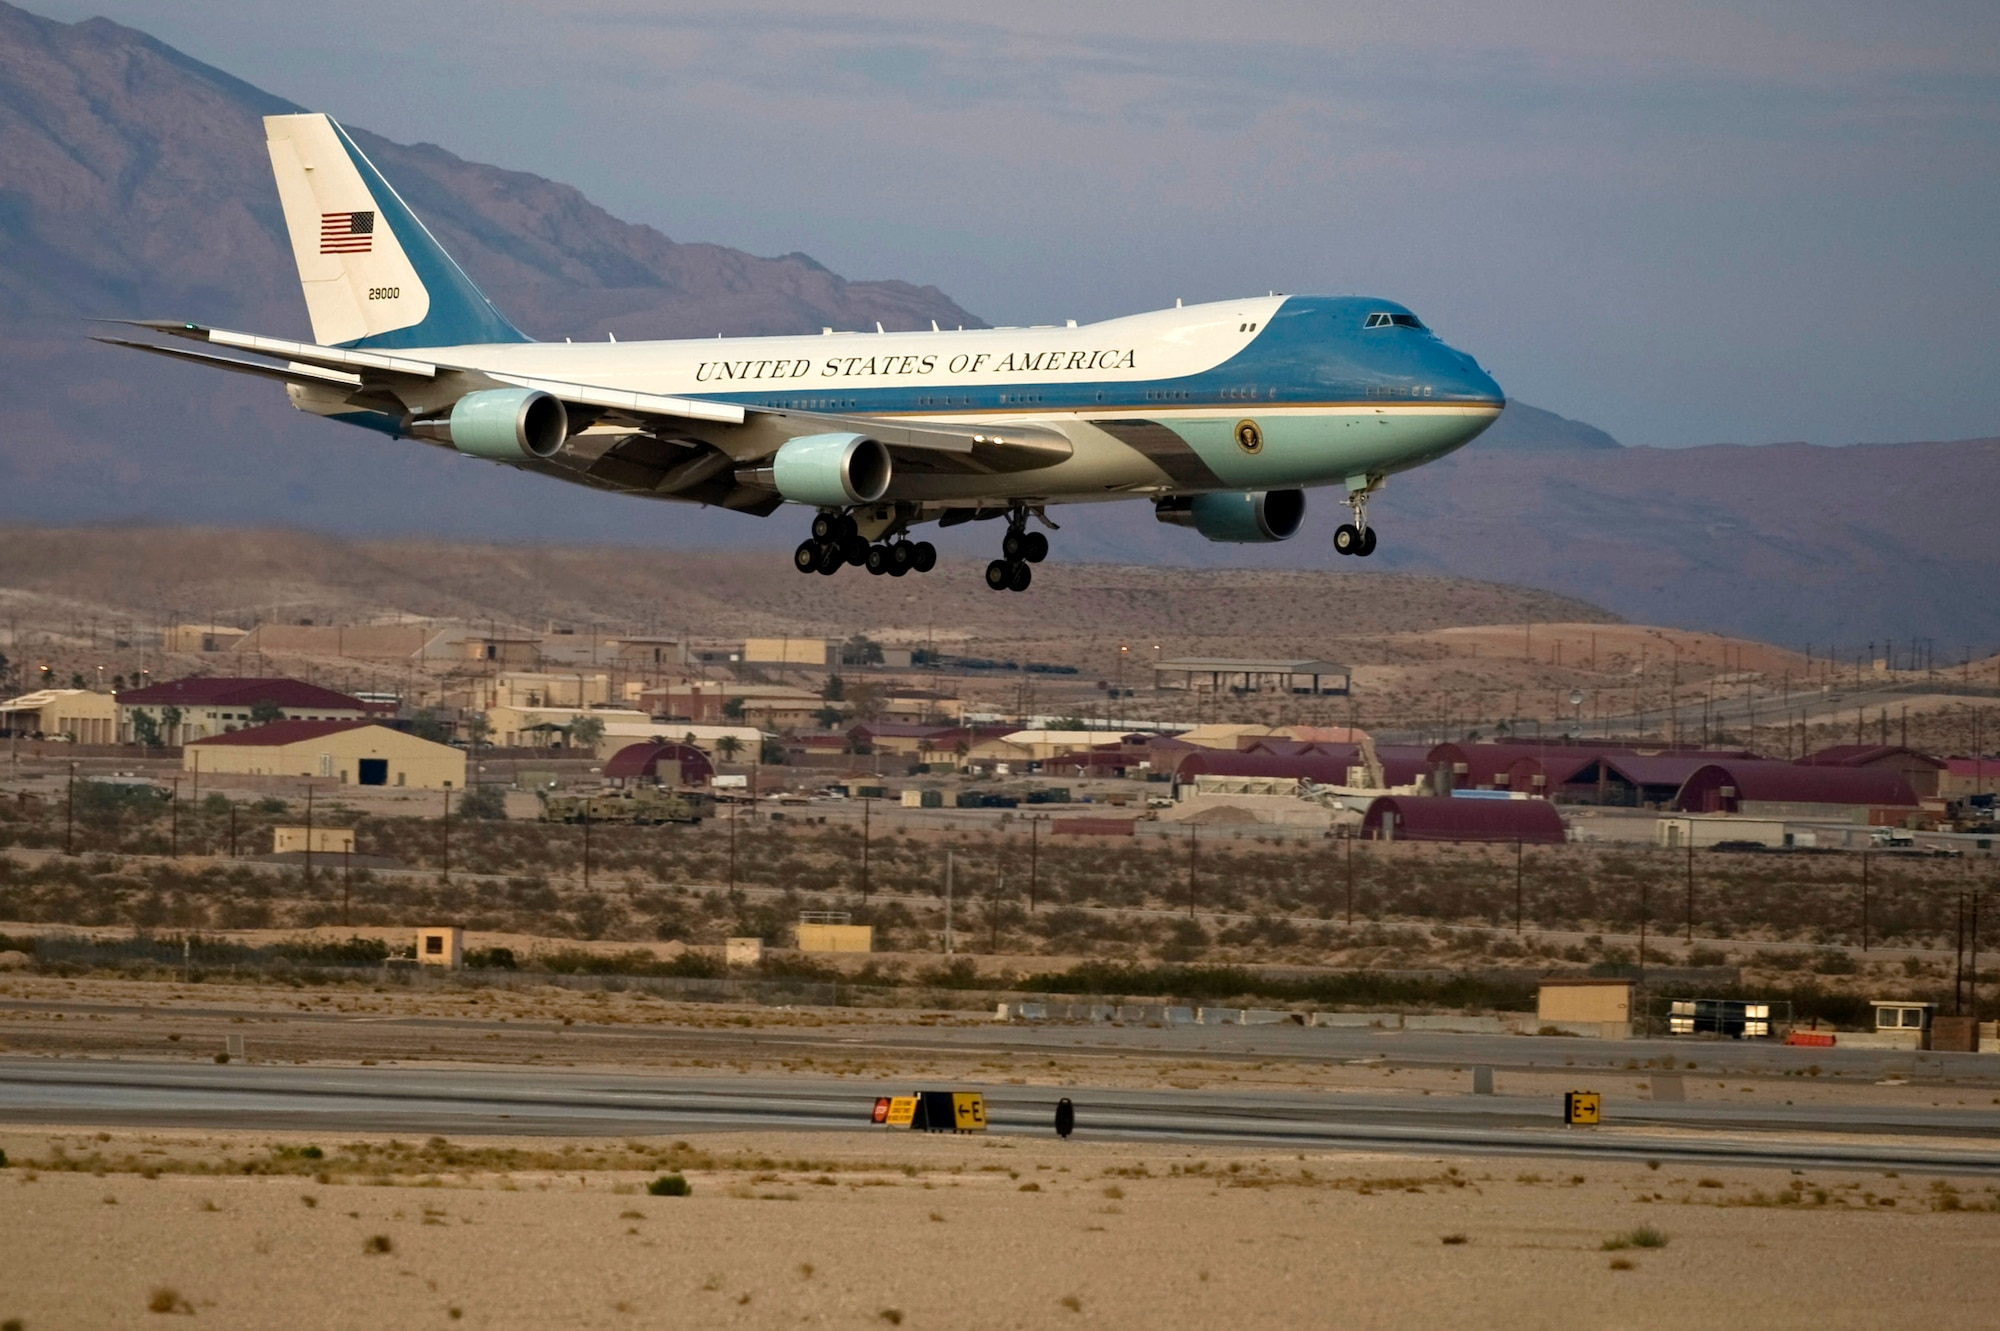 Air Force One lands at Nellis Air Force Base